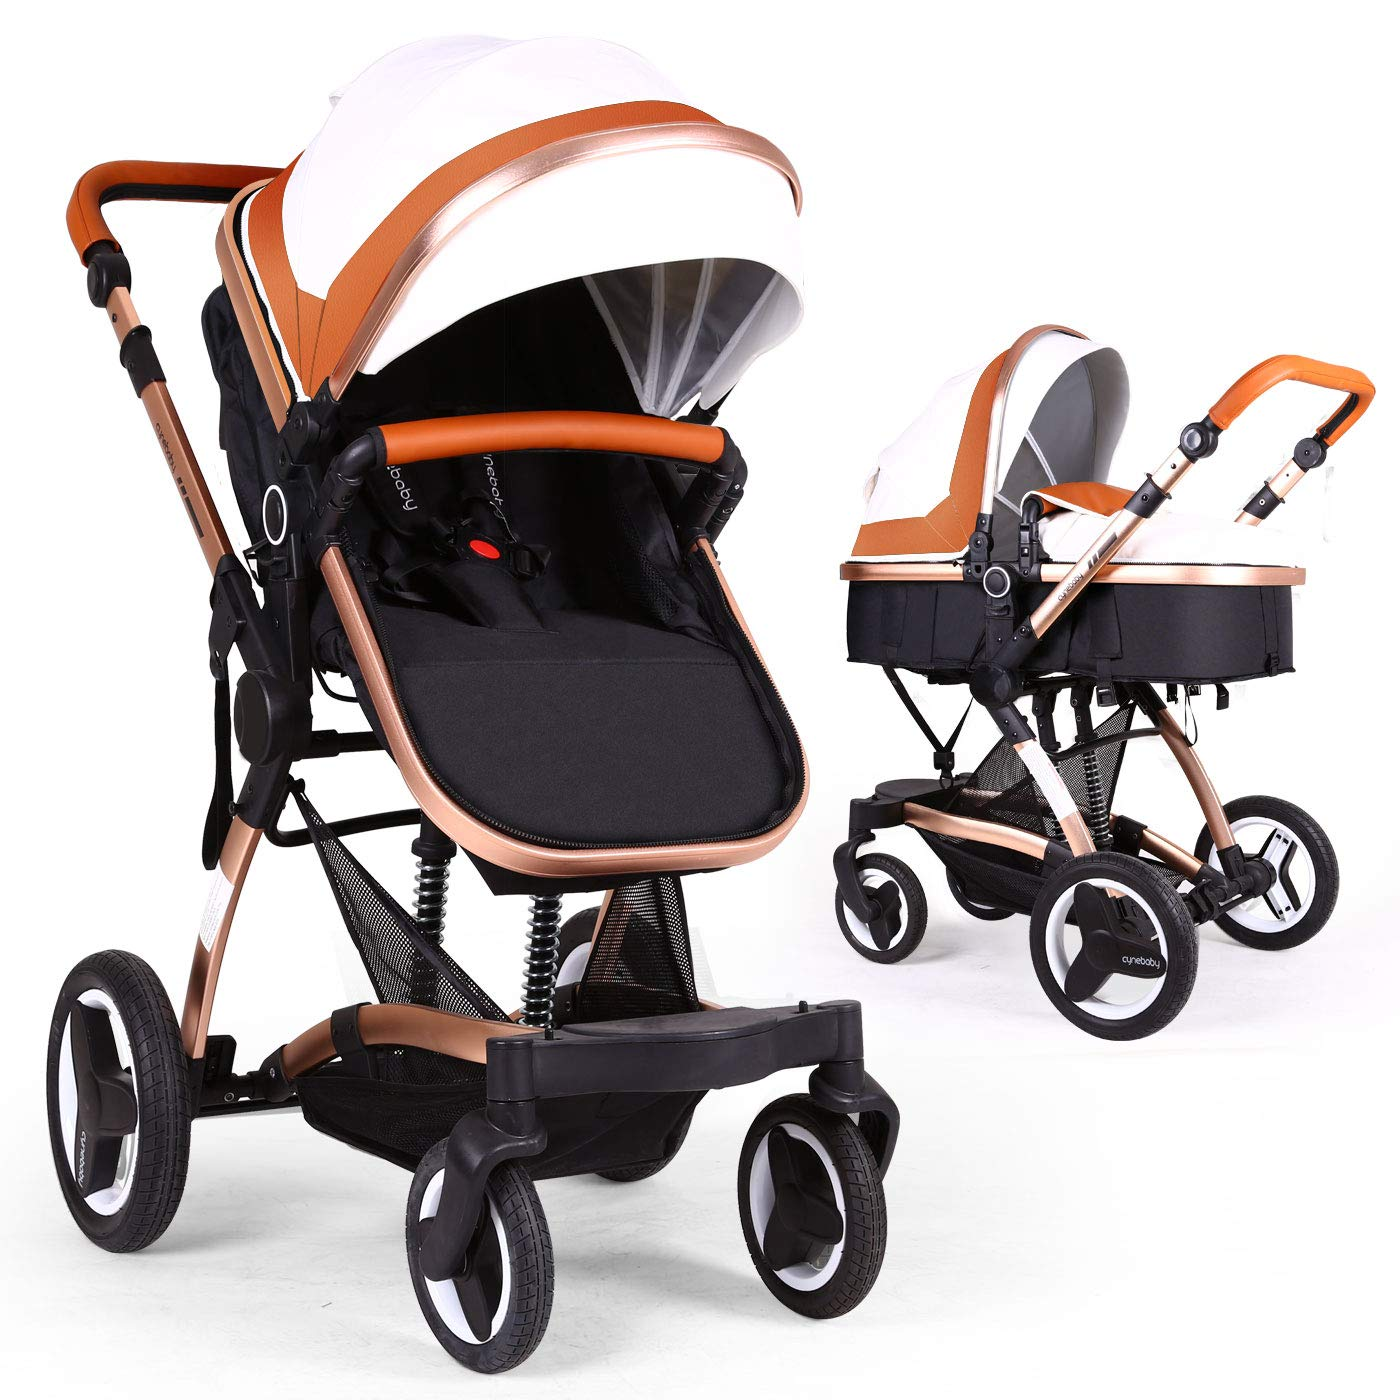 Bassinet Baby Stroller Reversible All Terrain Cynebaby Vista City Select Strollers For Infant Toddler Pram Pushchair Add Net Cover Mellow Coffee